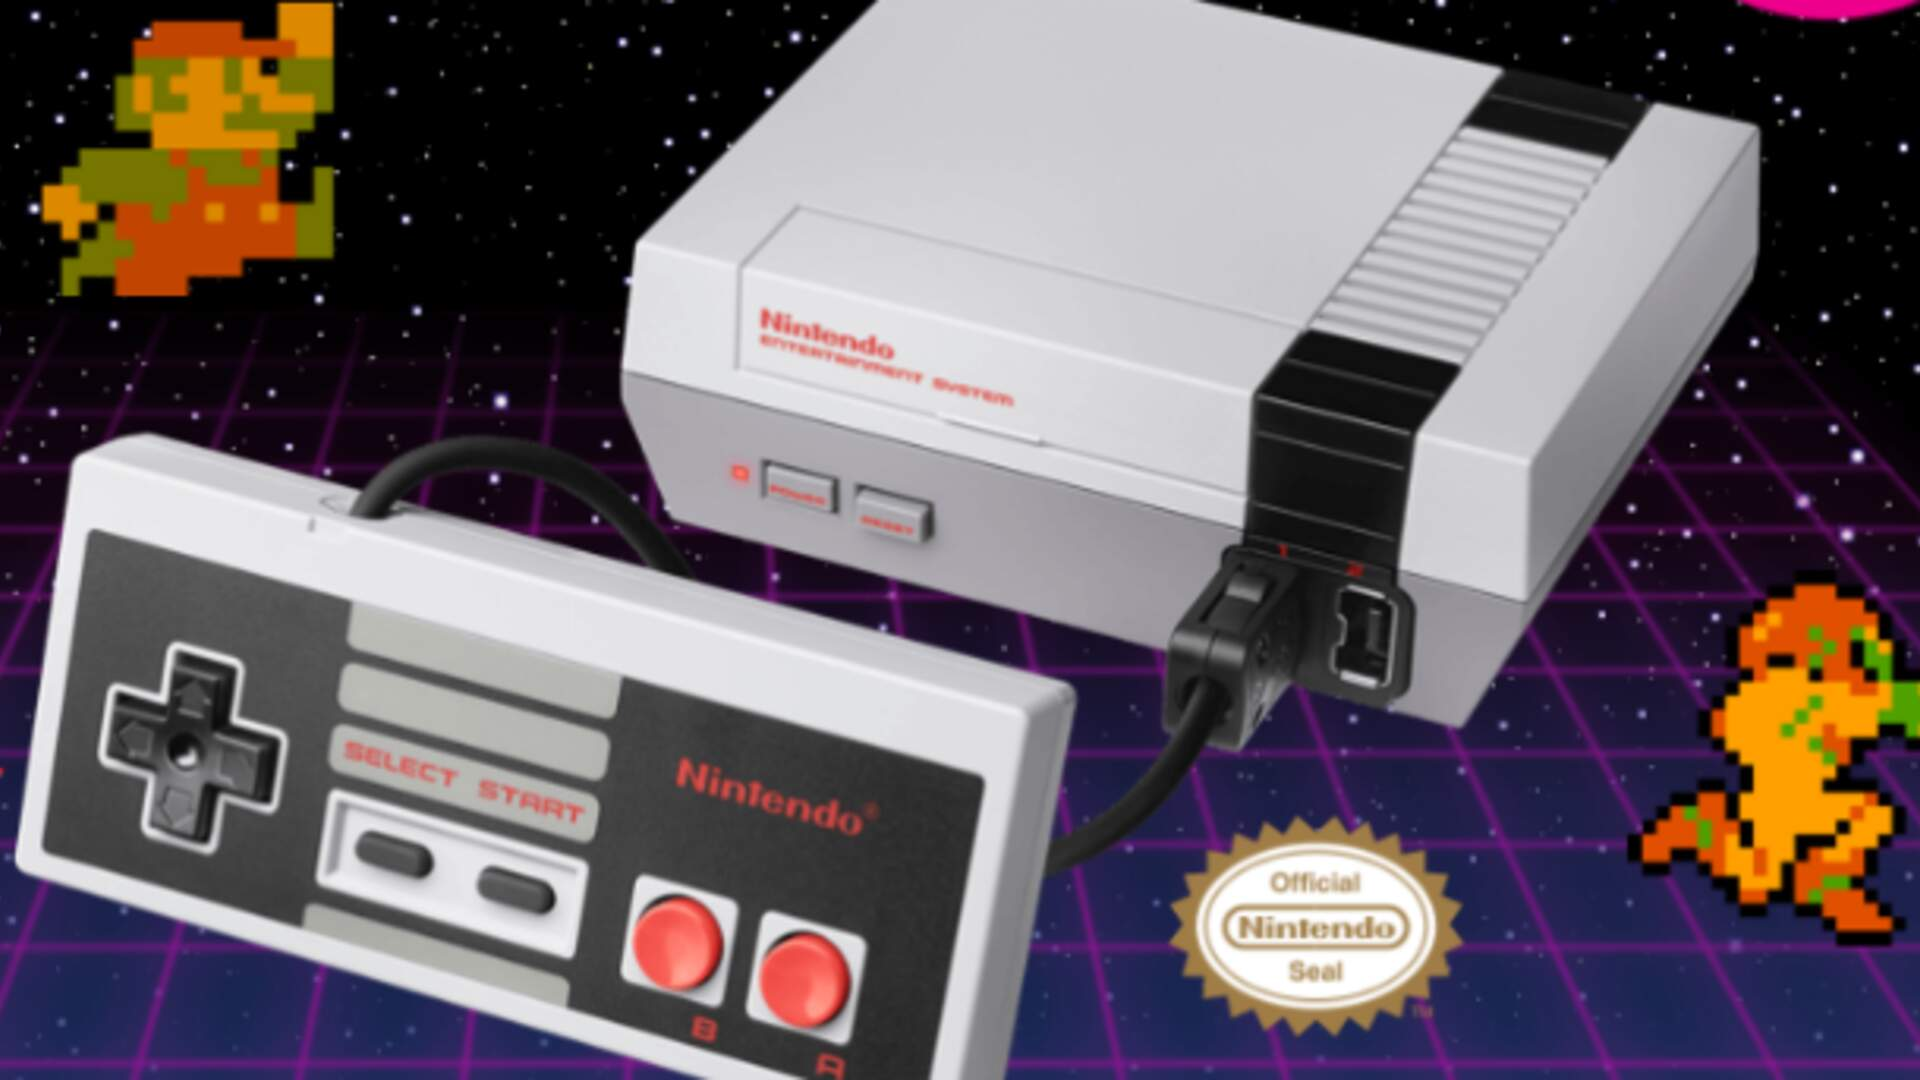 NES Classic Edition Back in Stores on June 29